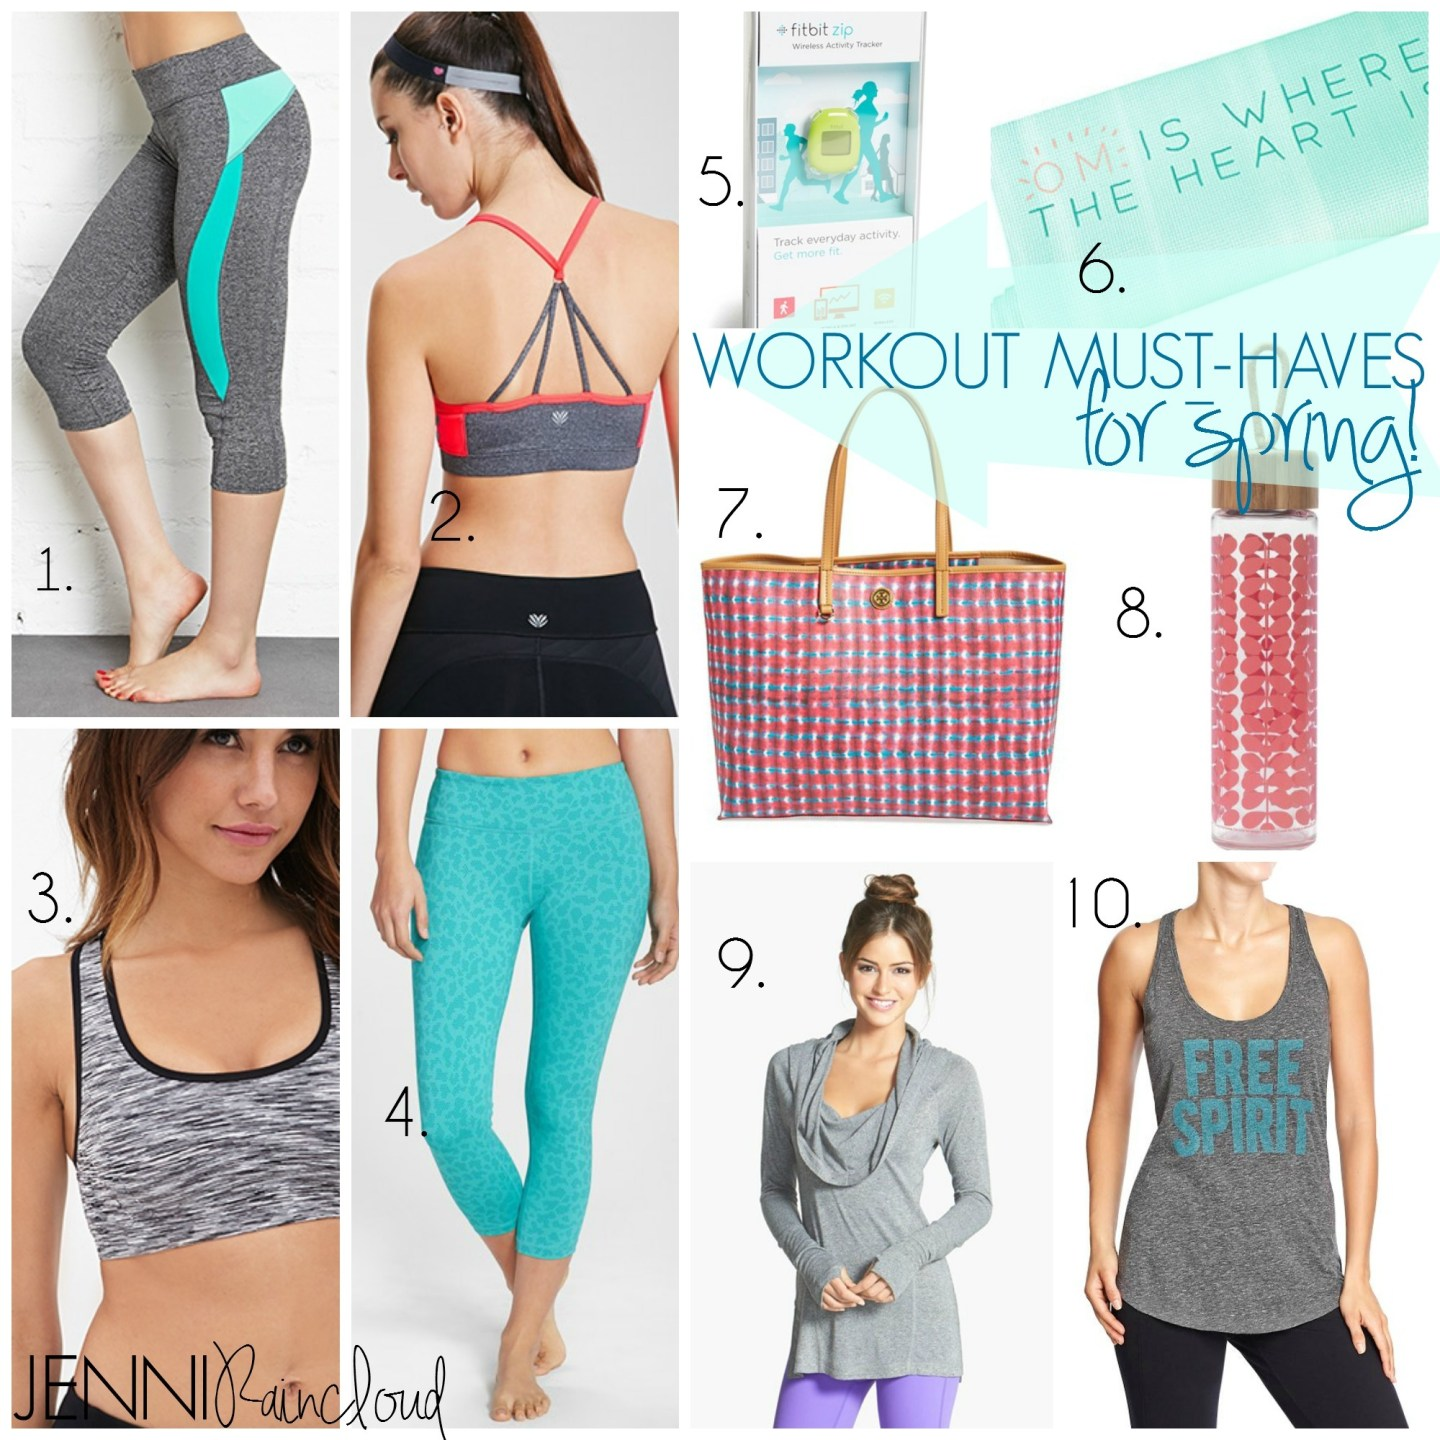 Workout Must-Haves